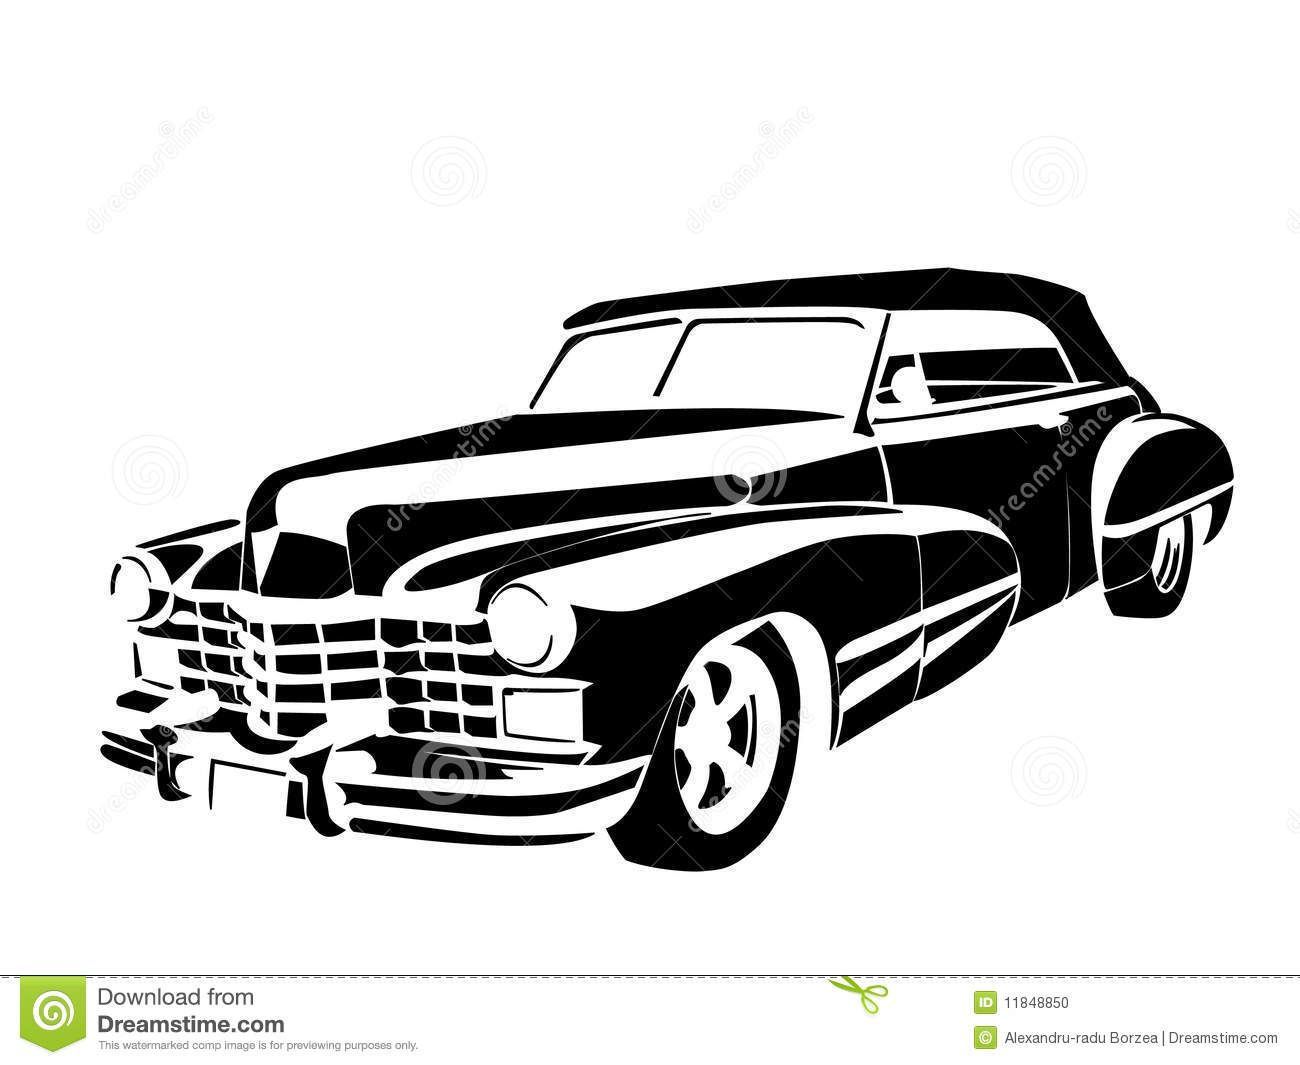 1966 Mustang Wiring Diagrams likewise 2rokq Looking Wiring Schematic 1947 48 Chevrolet in addition Cadillac Eldorado Brougham 1957 1958 likewise V 42 furthermore RepairGuideContent. on 1948 cadillac convertible